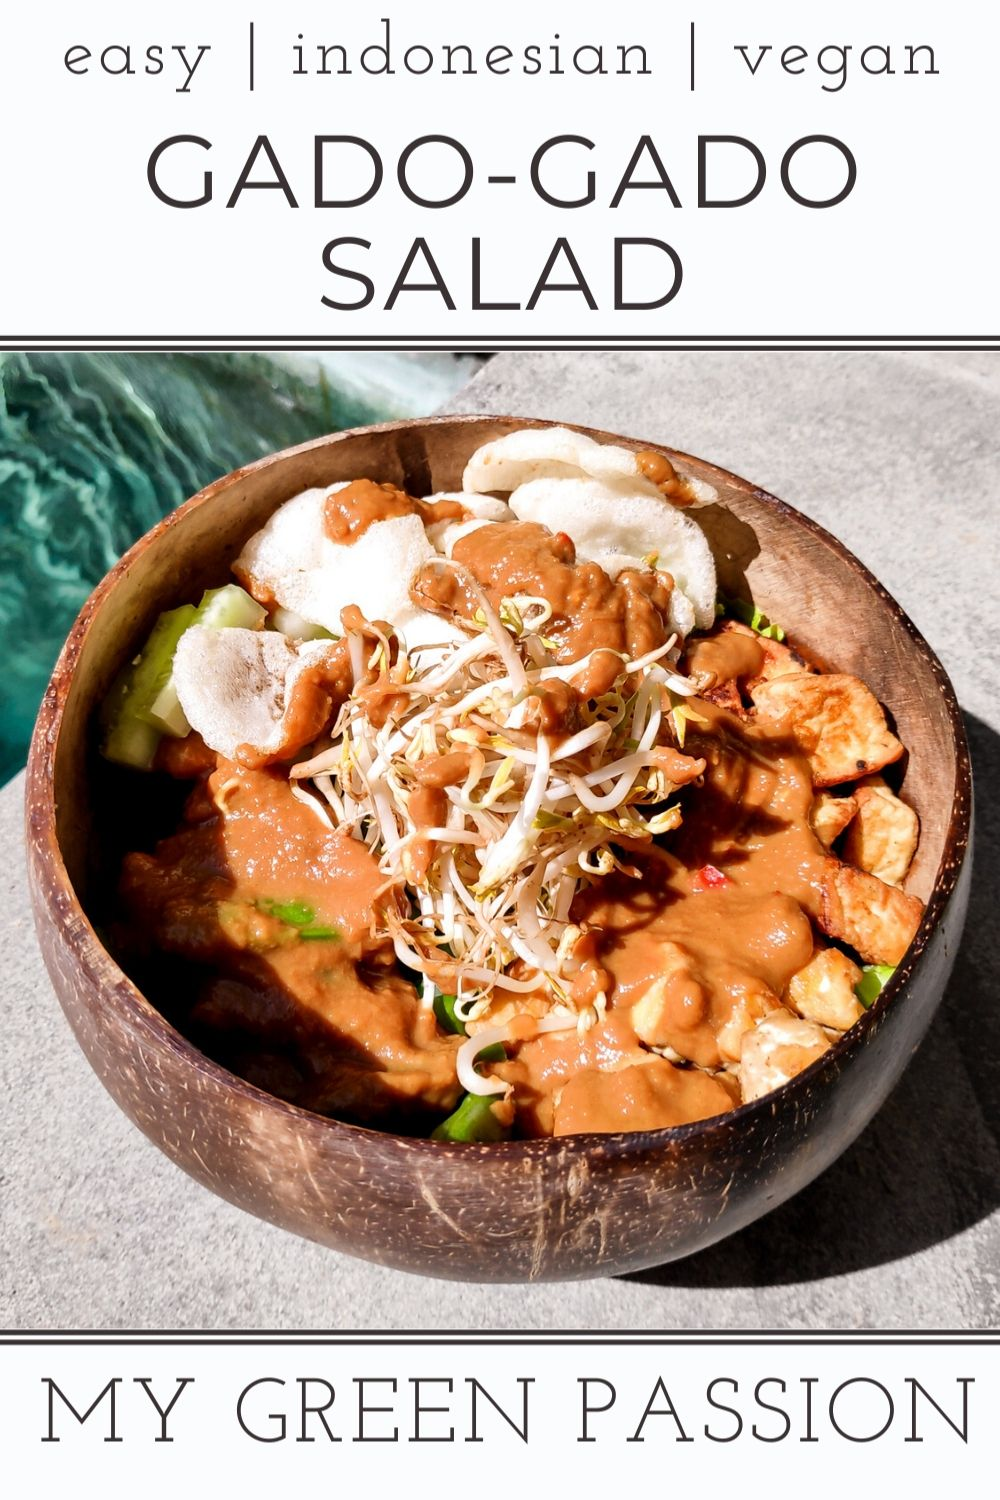 vegan gado-gado salad easy indonesian plant-based tofu tempeh